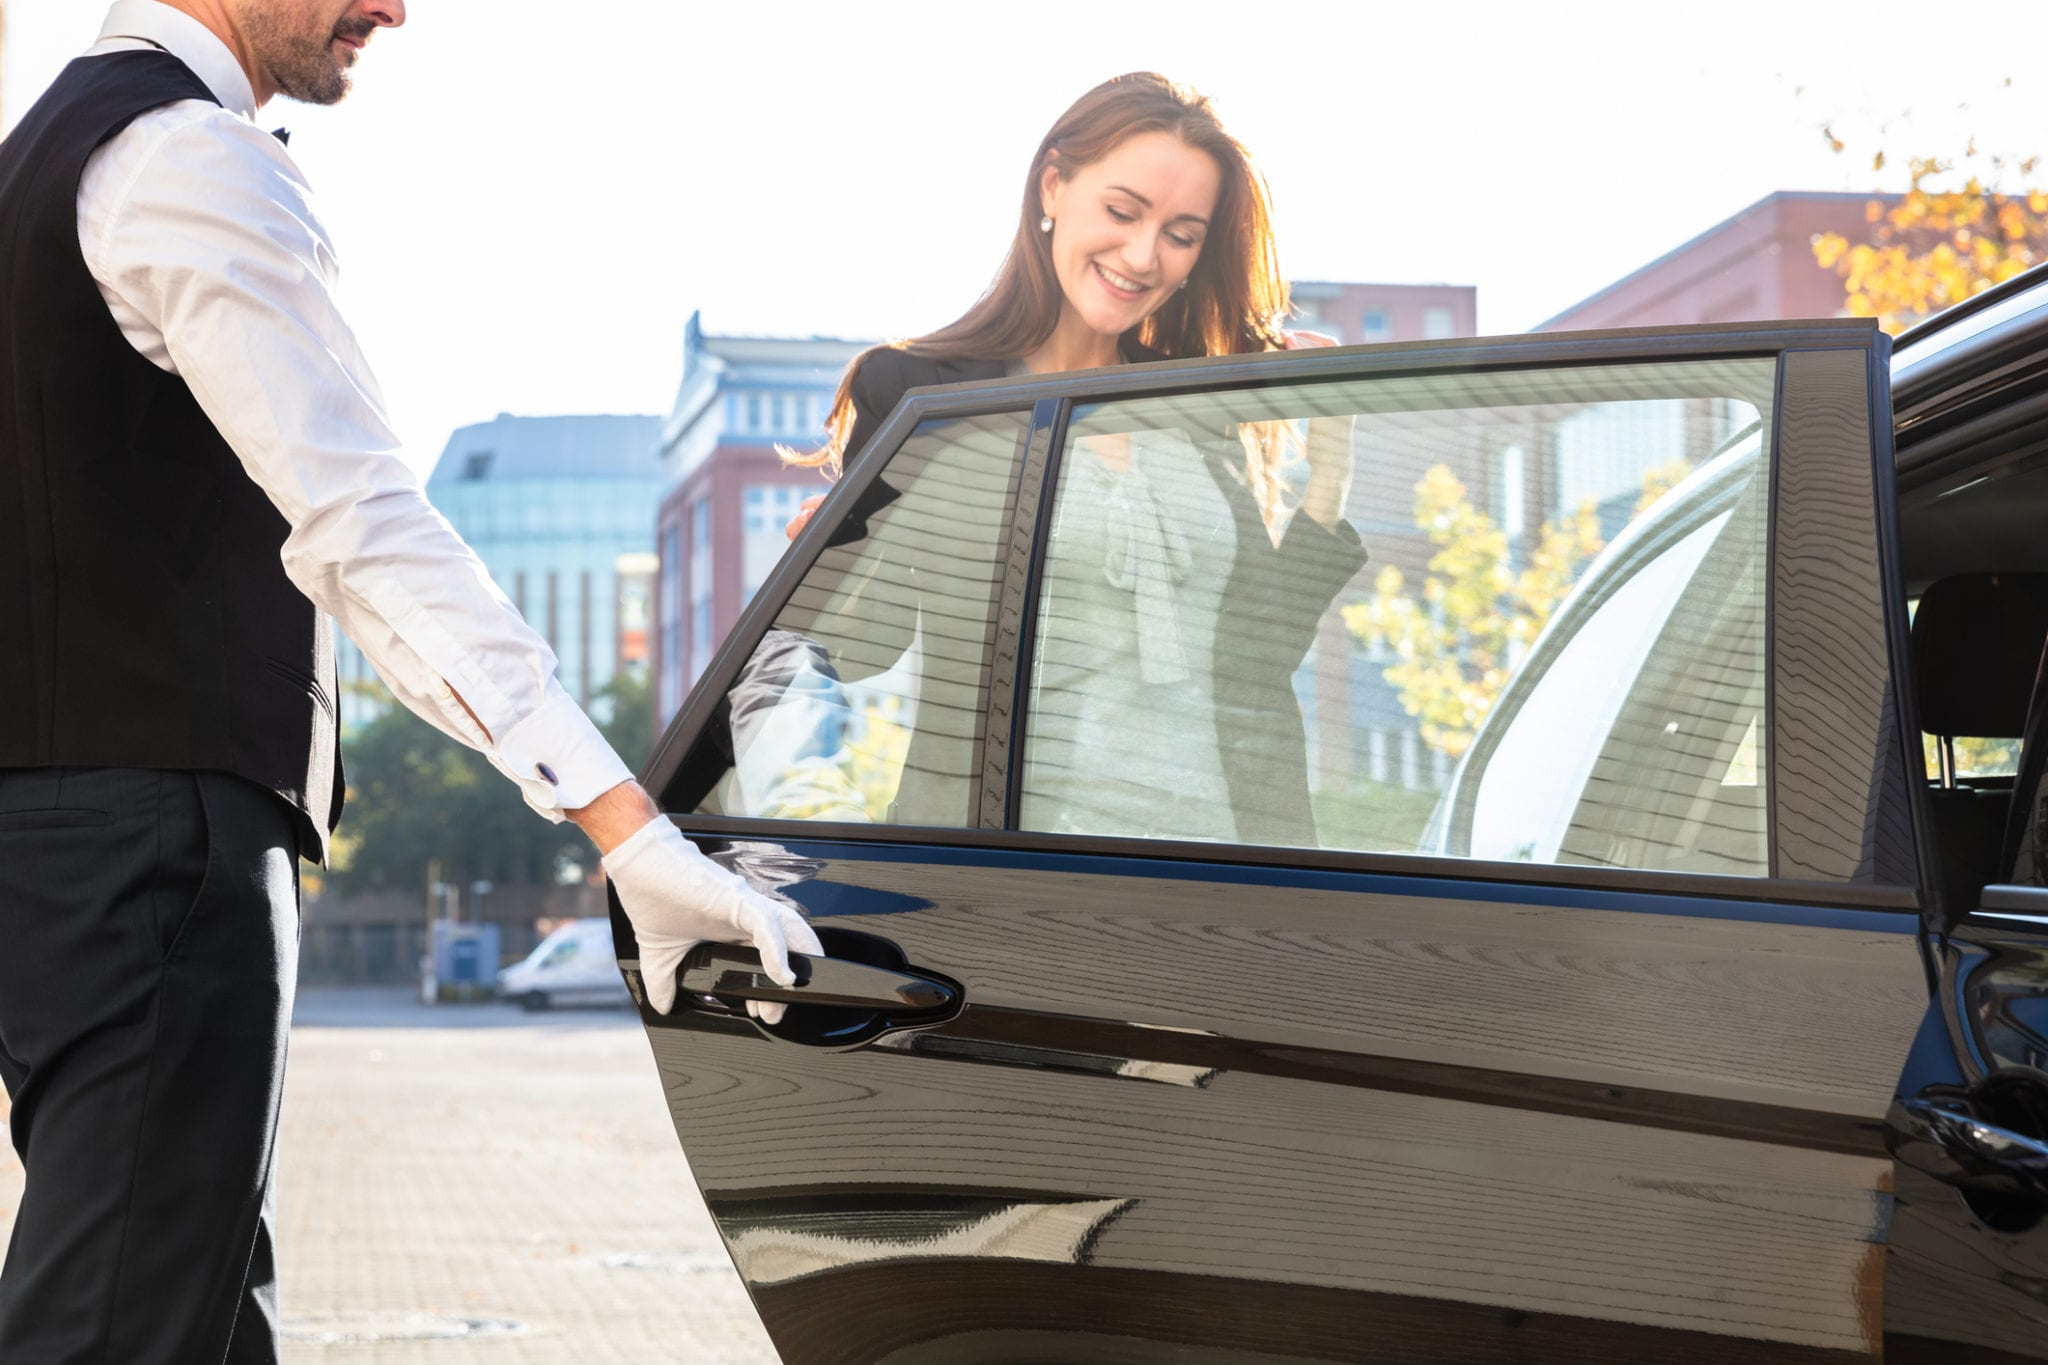 Liability Insurance for Black Car Services